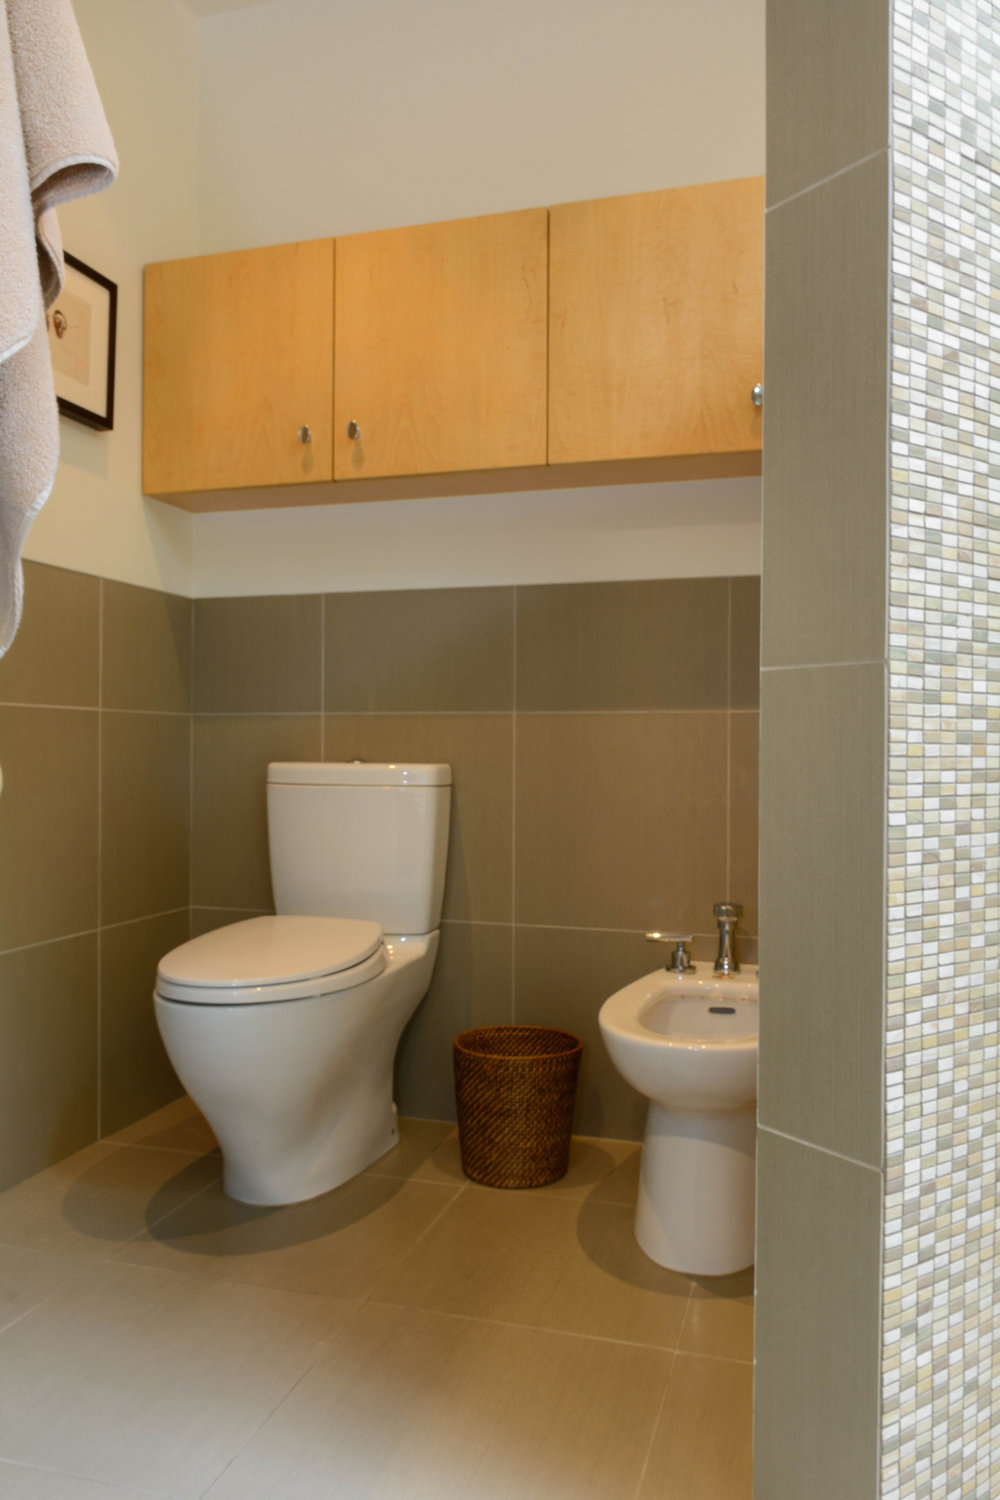 Toilet and bidet hidden by curved mosaic tile privacy wall